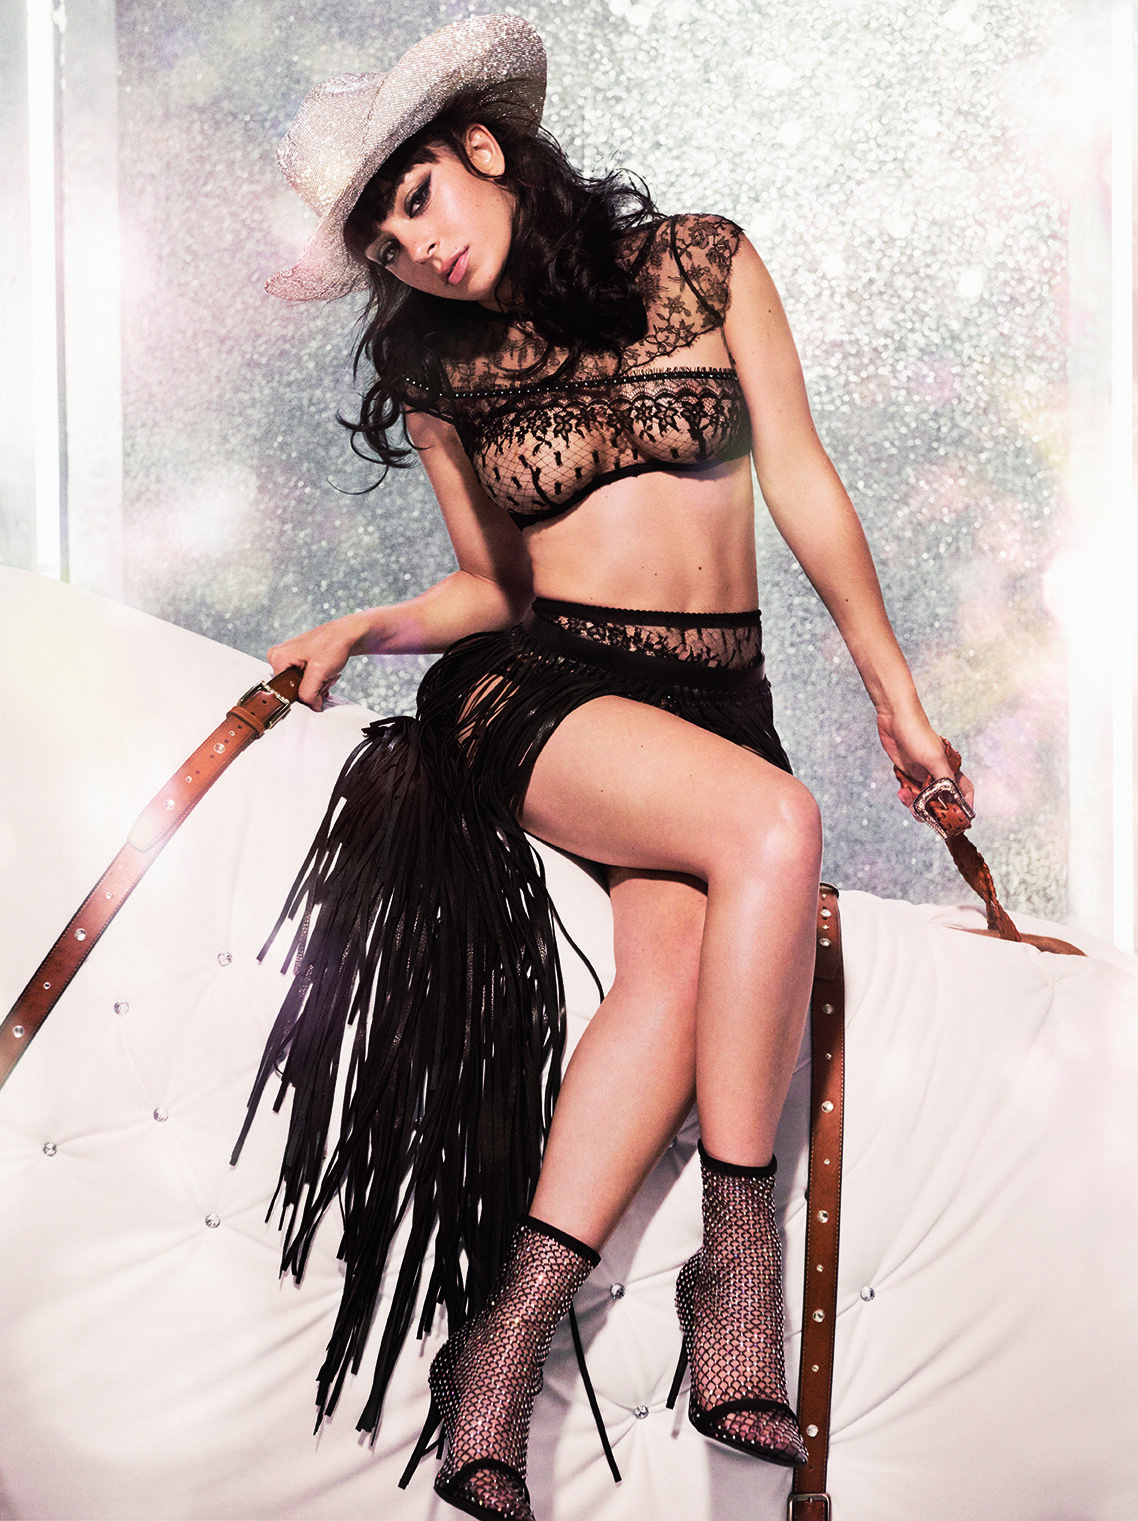 Saddle Up Santa Charli XCX Agent Provocateur Kimmie Kyees